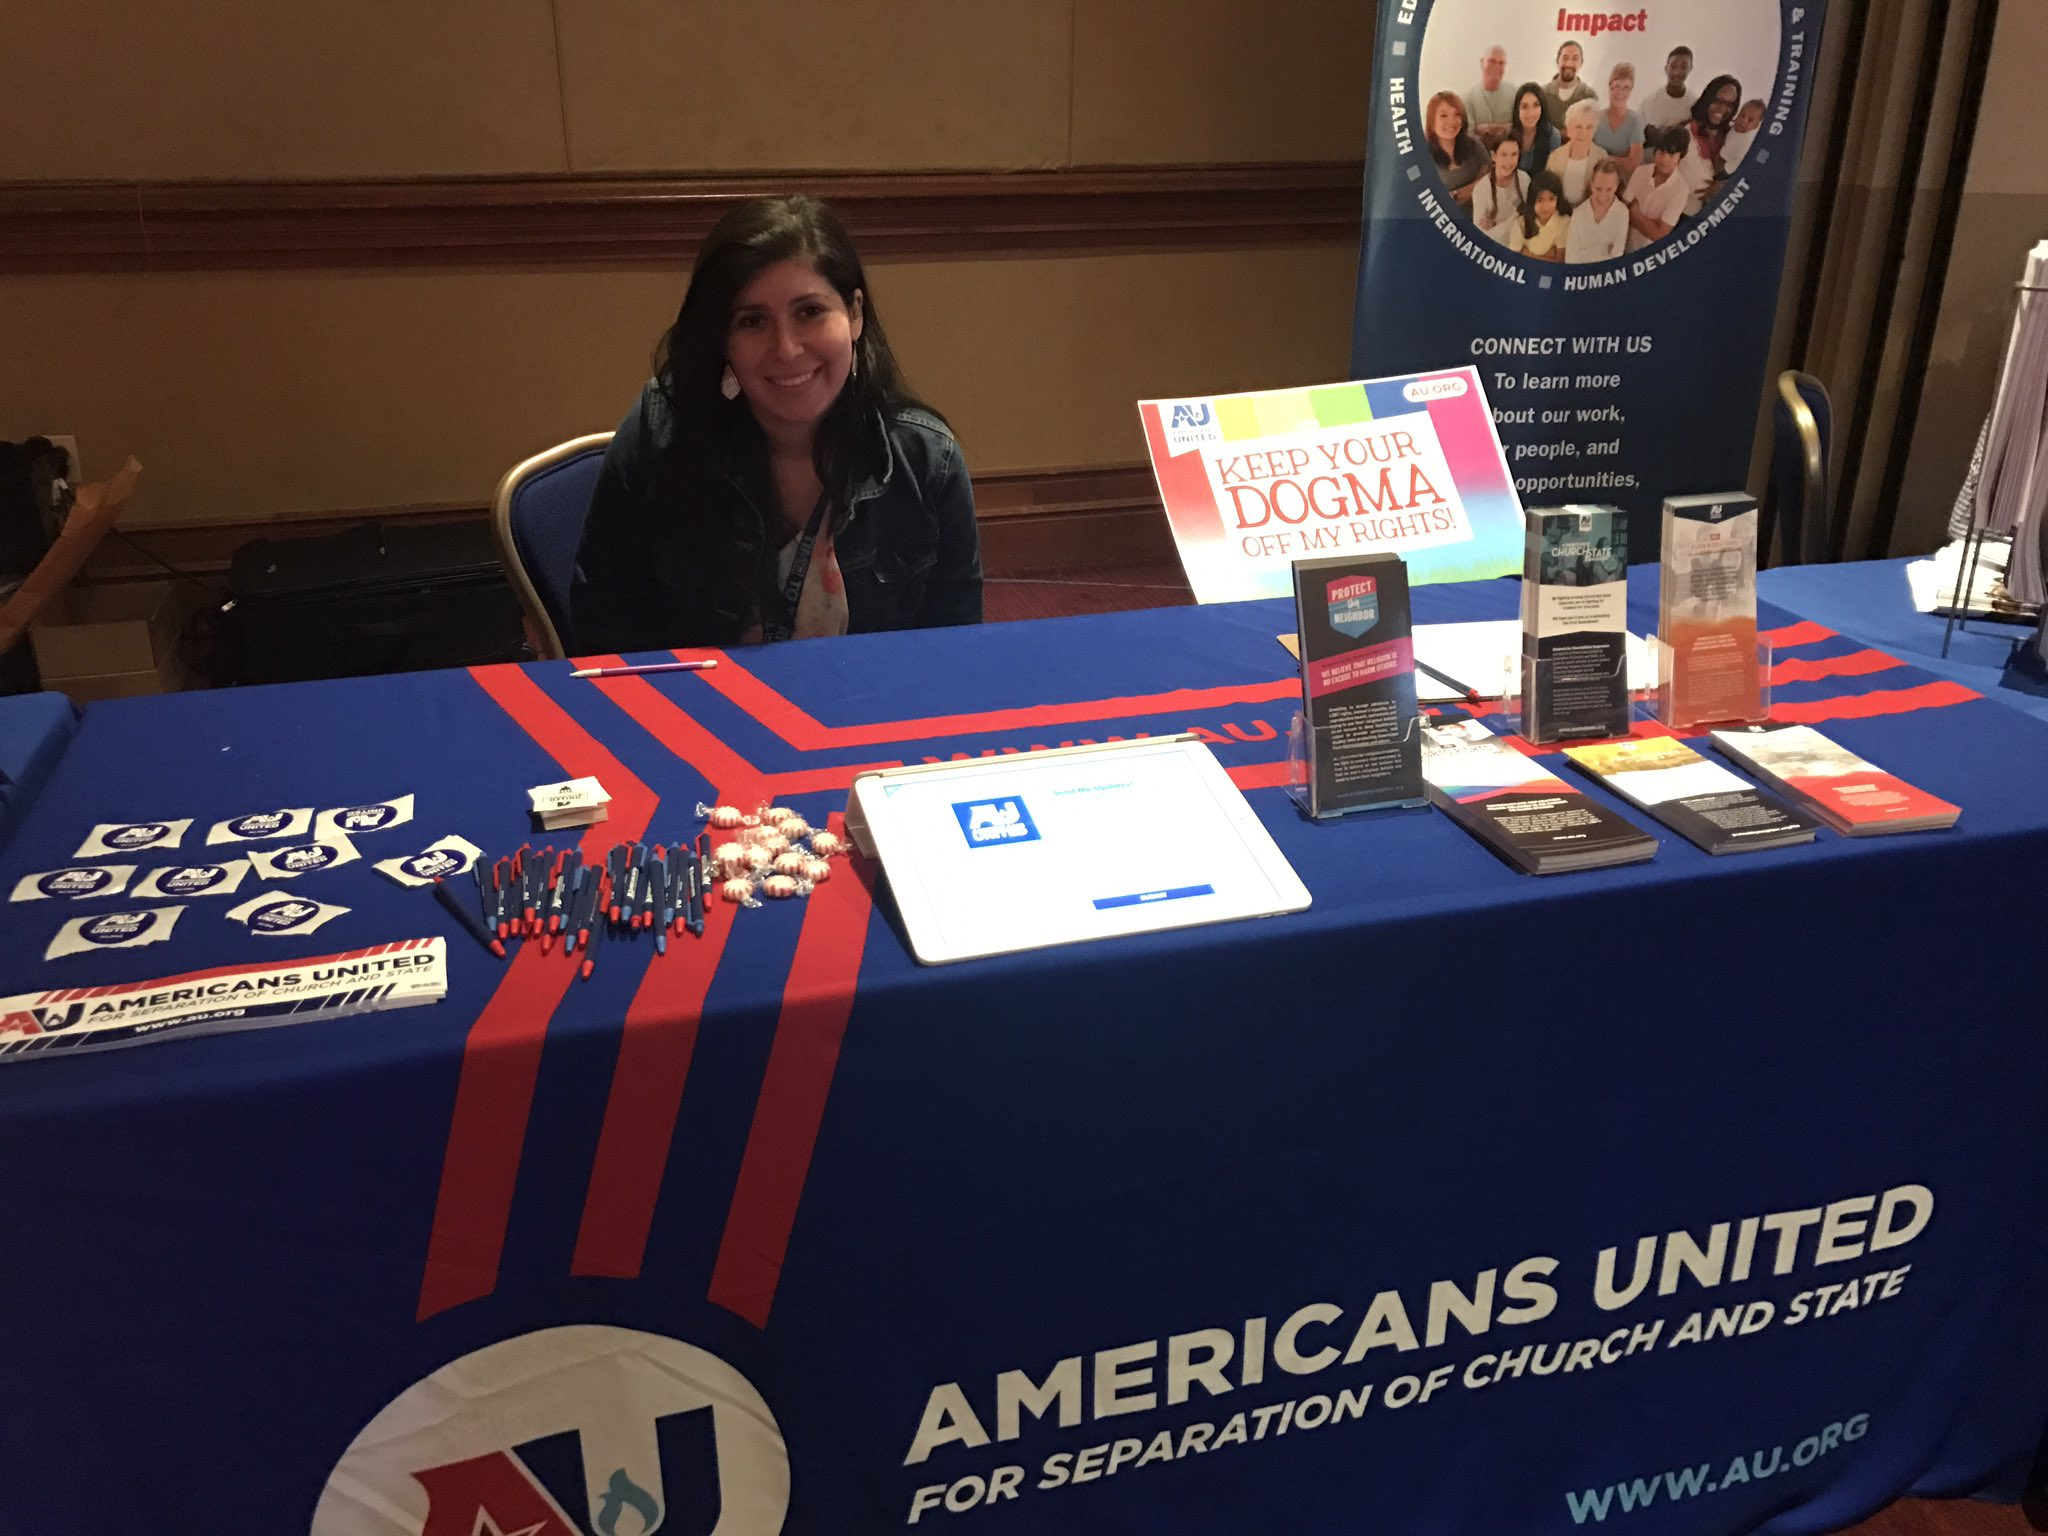 Come stop by our table @HRC 's #TimeToTHRIVE conference today in D.C.! Religion is no excuse to discriminate against LGBTQ people. https://t.co/liey6soFld